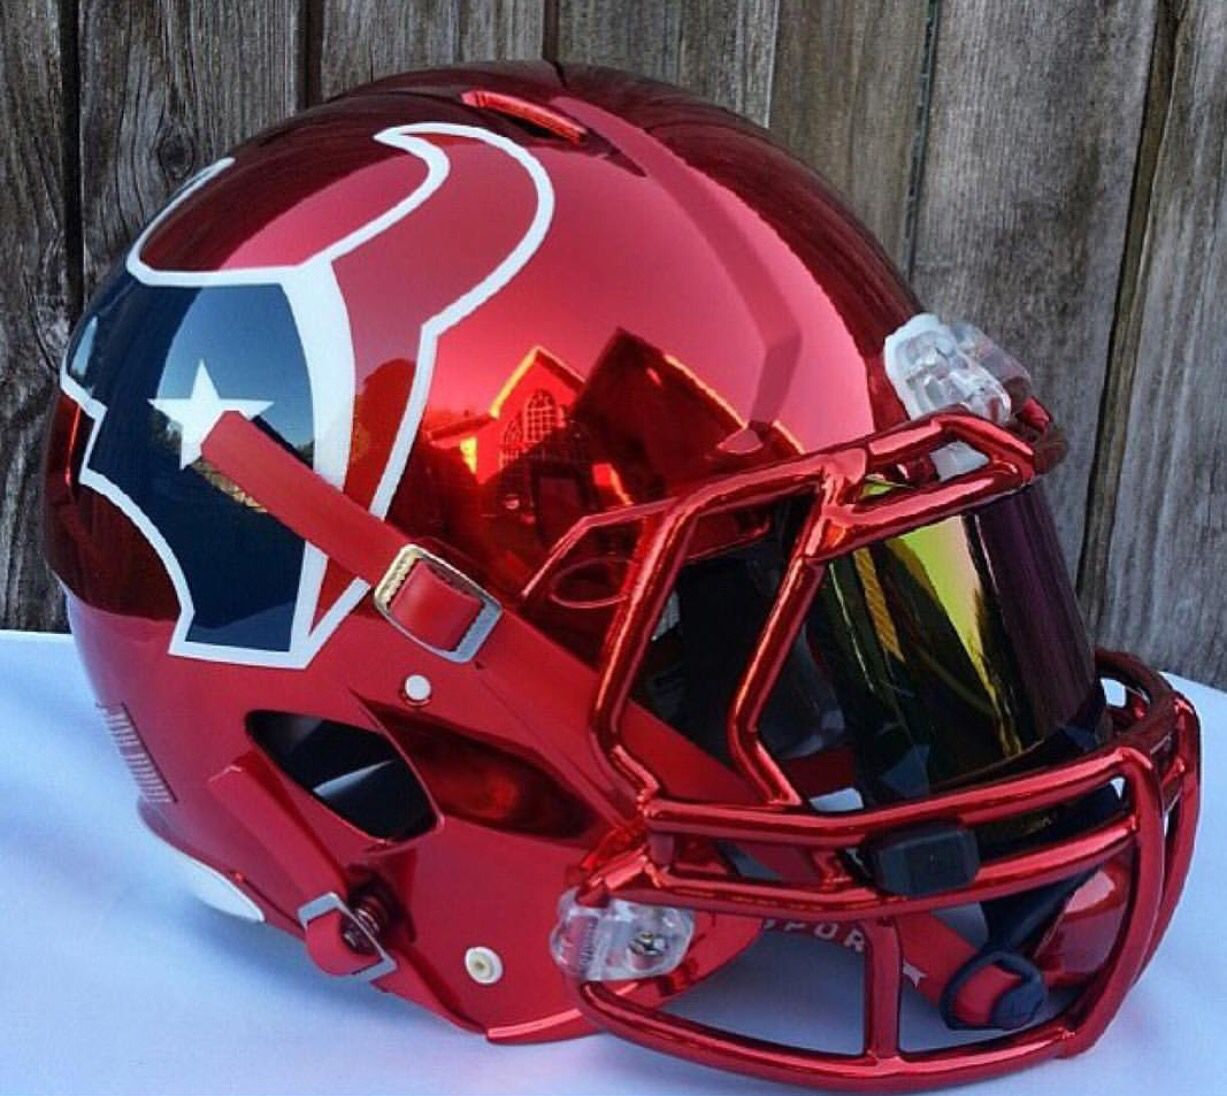 Houston Texans Concept Helmet Nice Red Chrome Instead Of